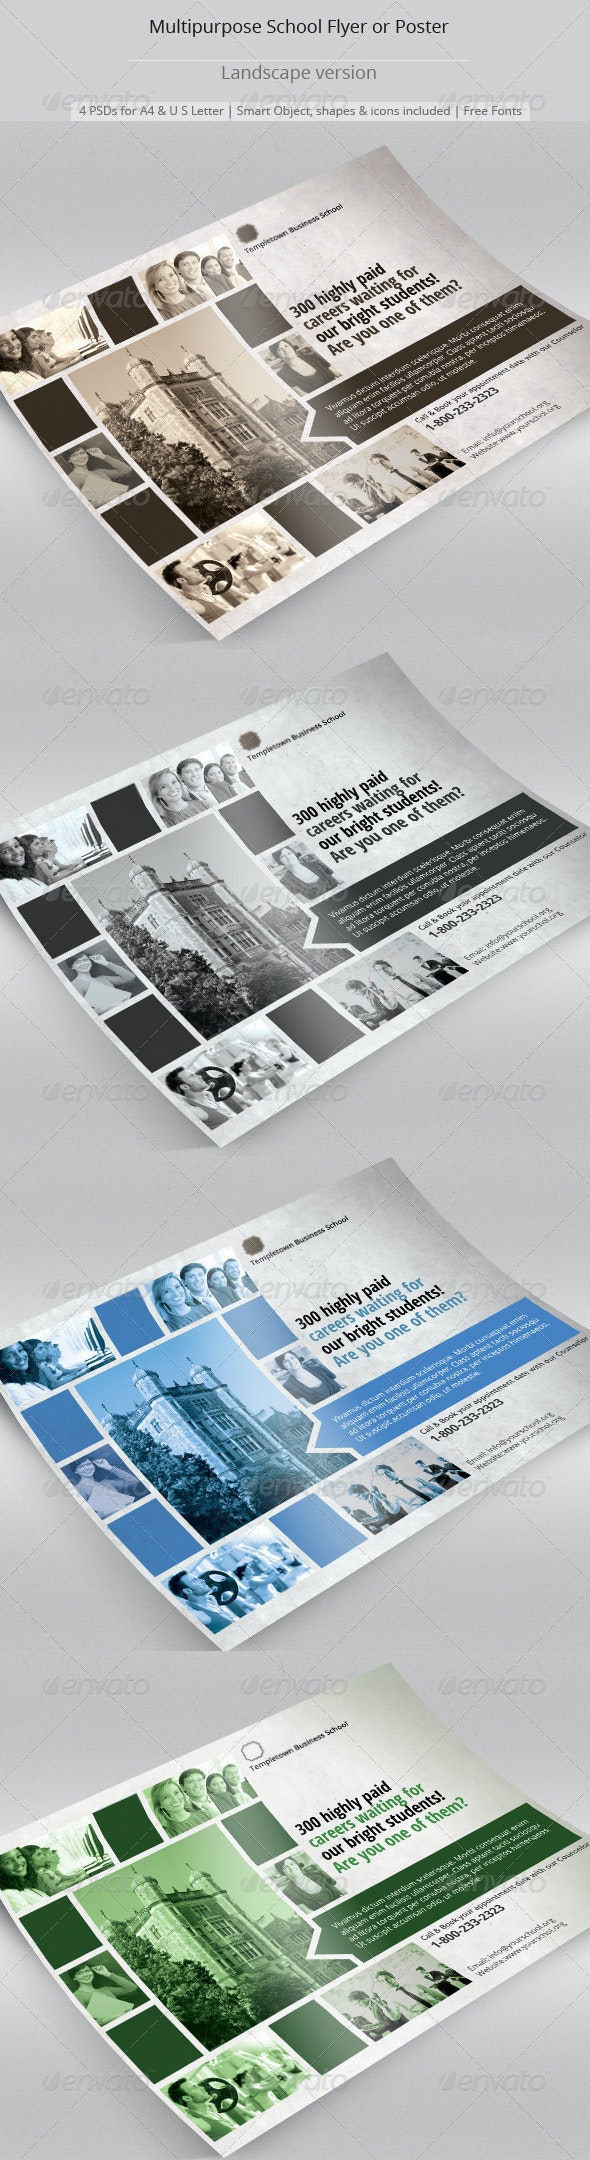 Multipurpose School Flyer or Poster - Flyers Print Templates